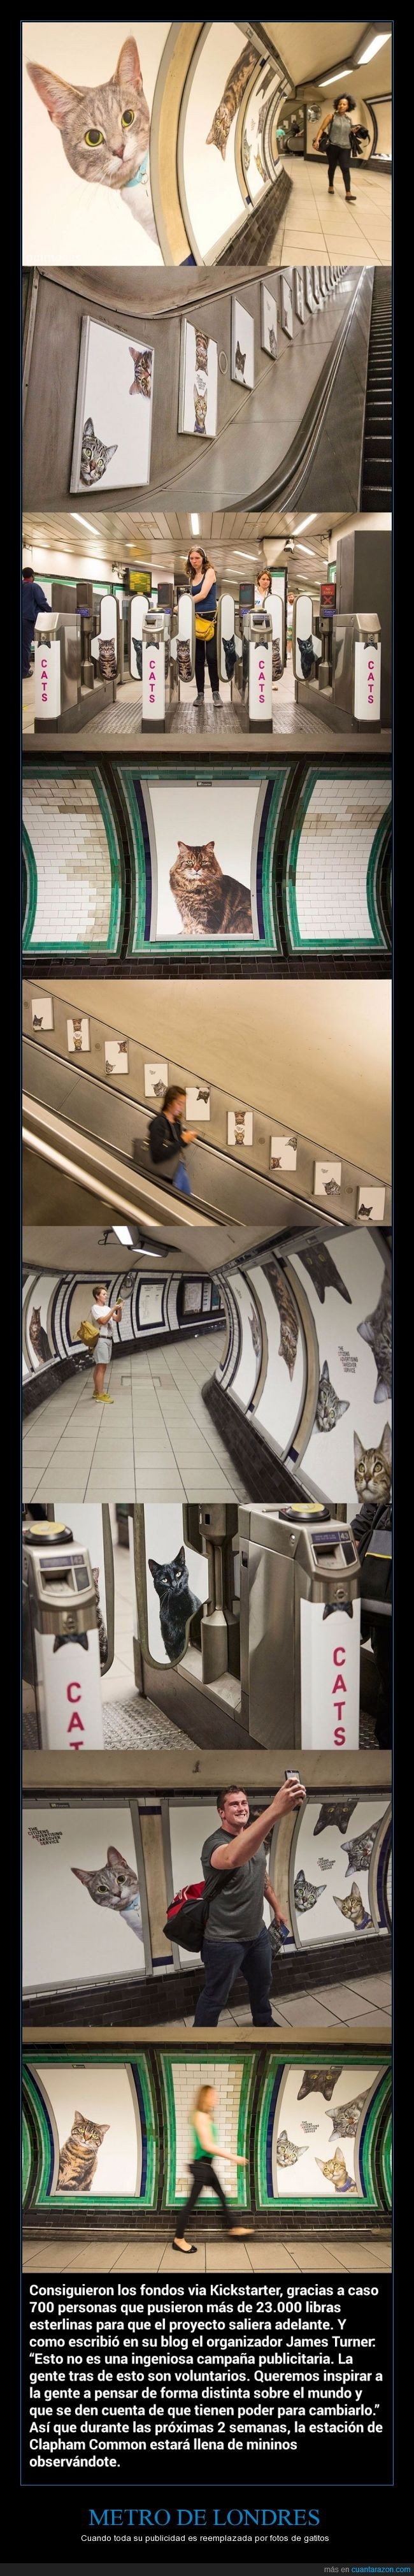 gato,gatos,london,londres,metro,the tube